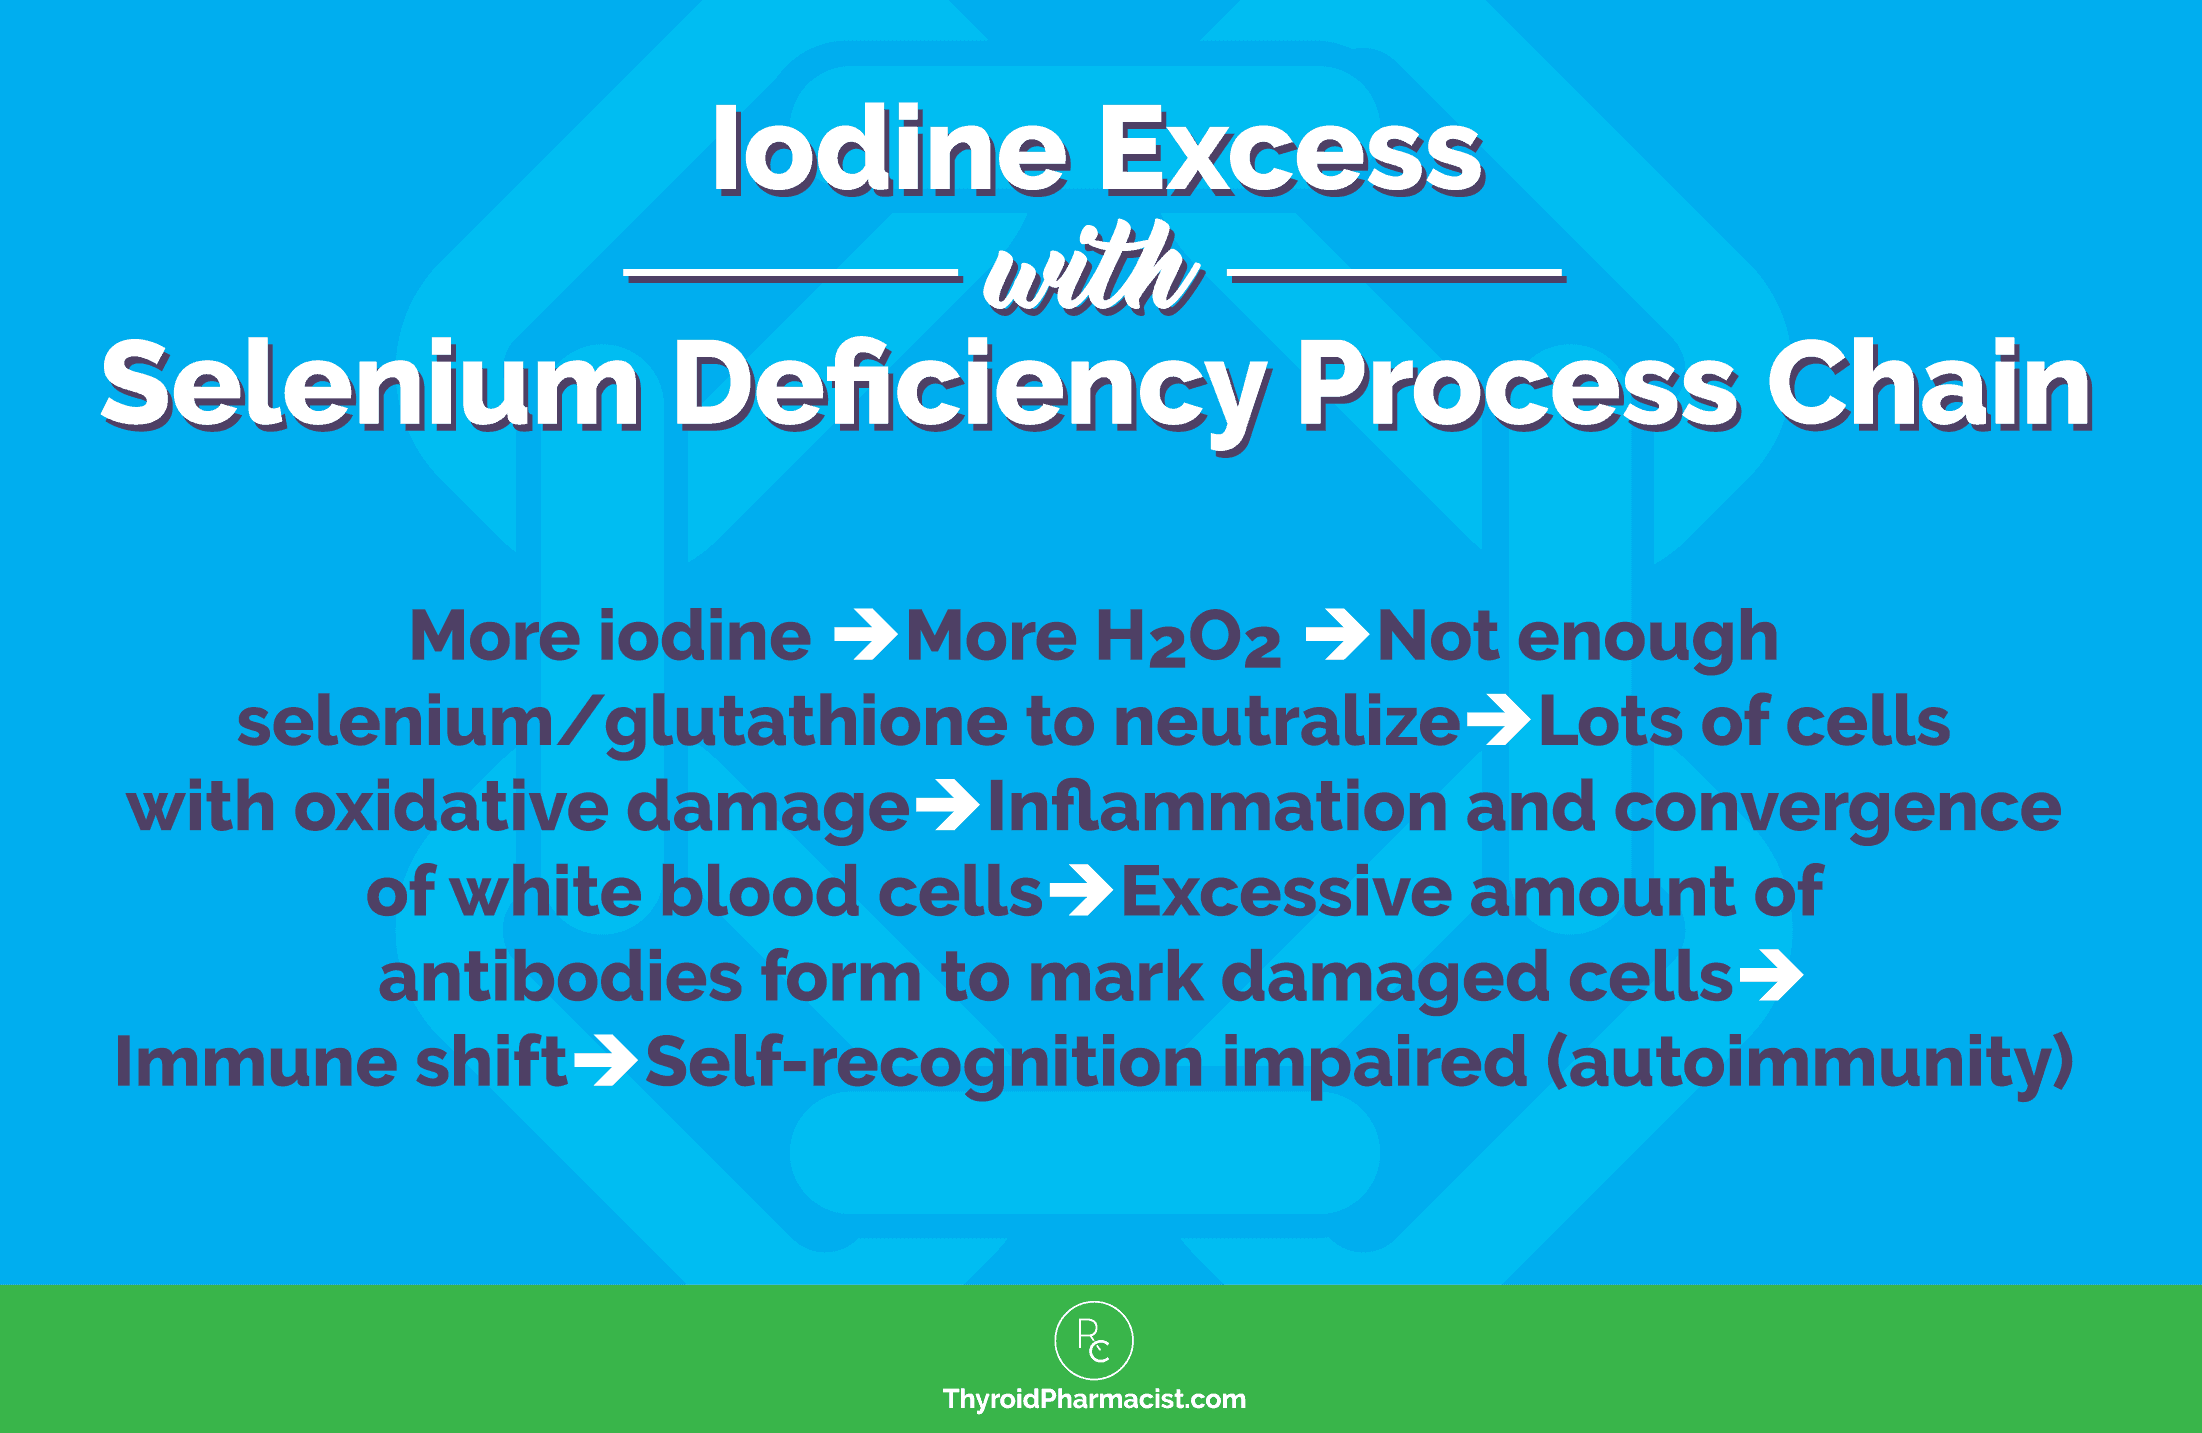 Iodine Excess and Selenium